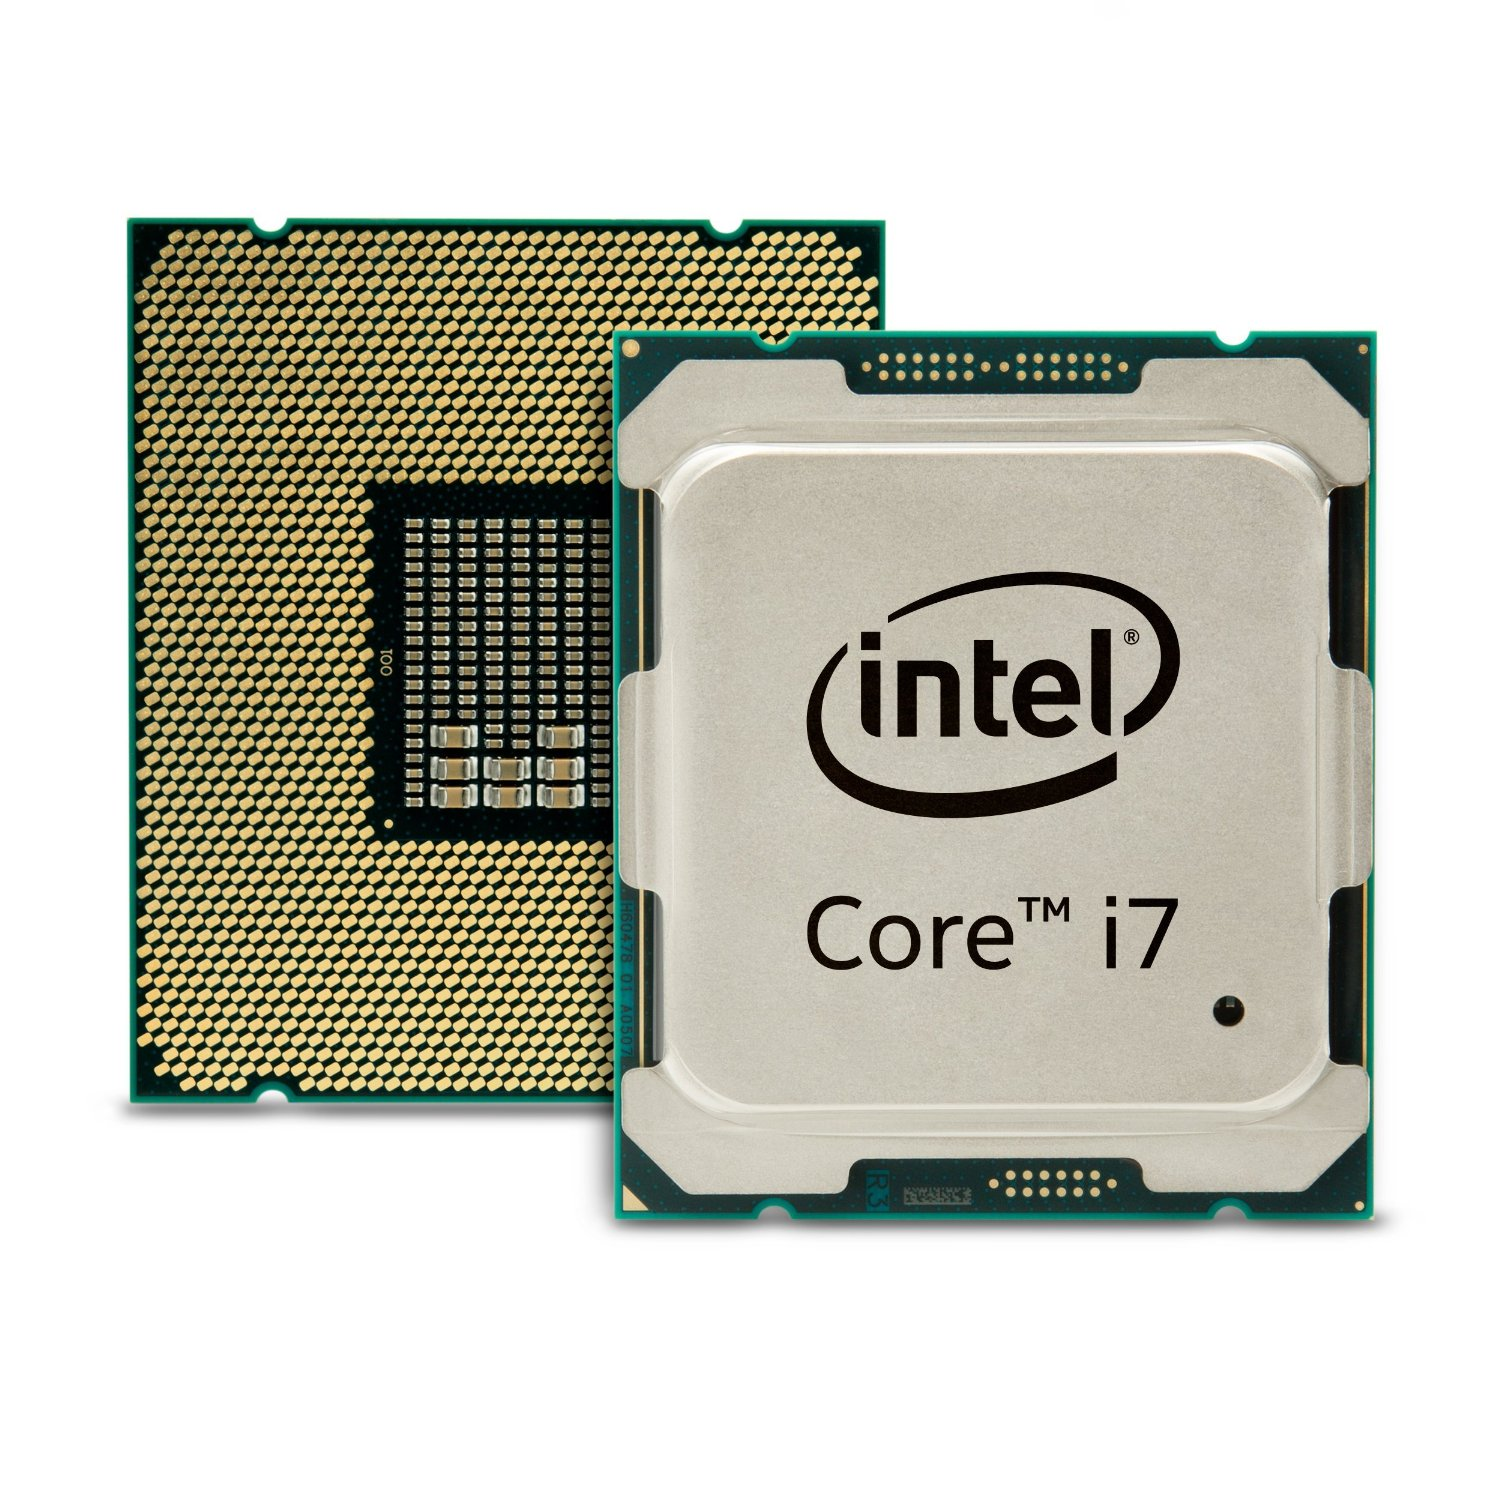 Процесор Intel I7-6800K /3.4G/15MB/BOX/2011-3